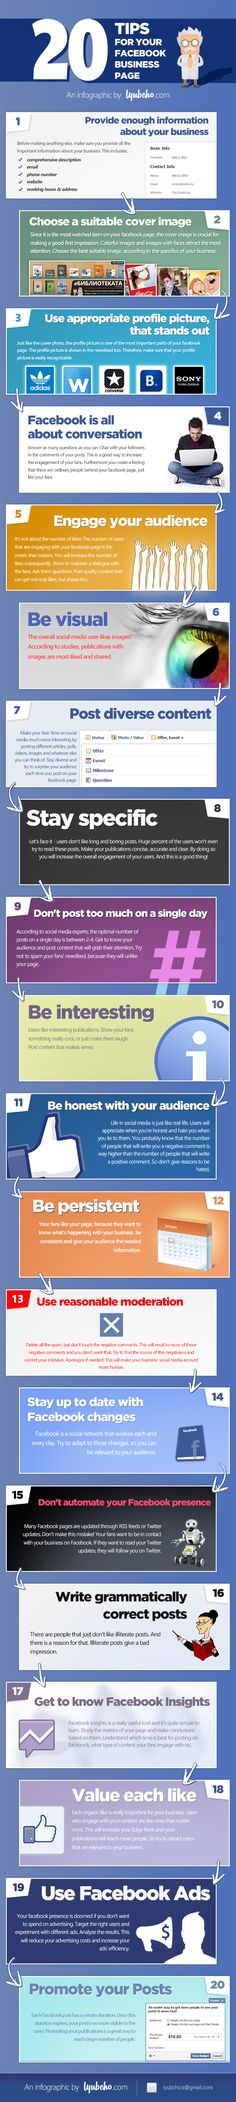 20 Tips for your Facebook Business Page / INFOGRAPHIC/